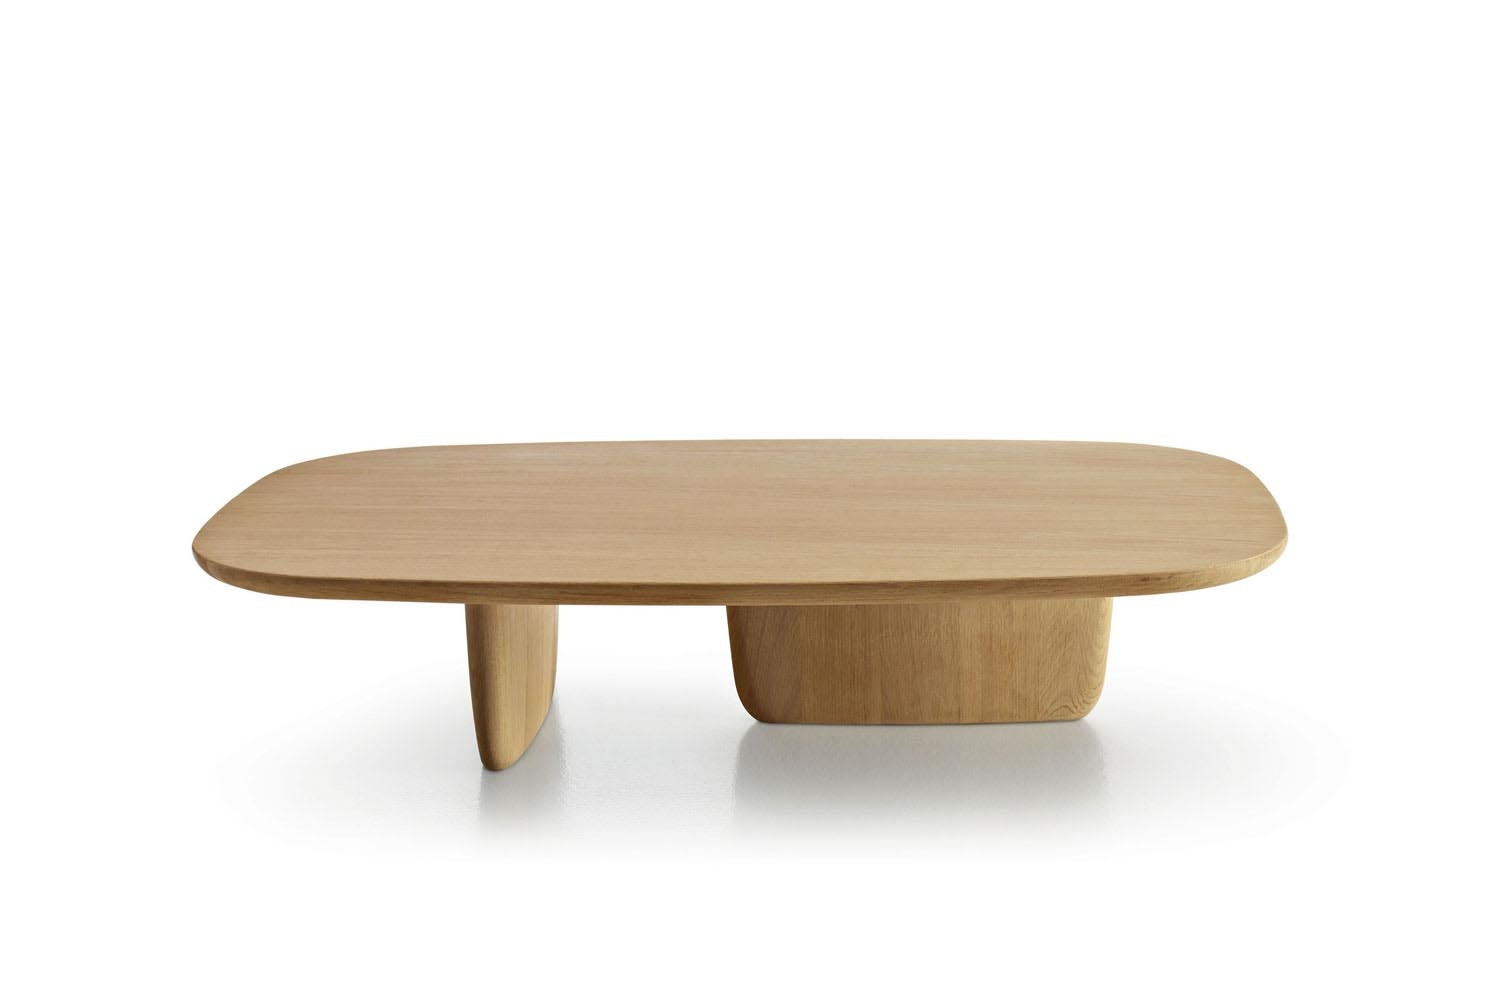 Tobi-Ishi Coffee Table by Edward Barber & Jay Osgerby for B&B Italia